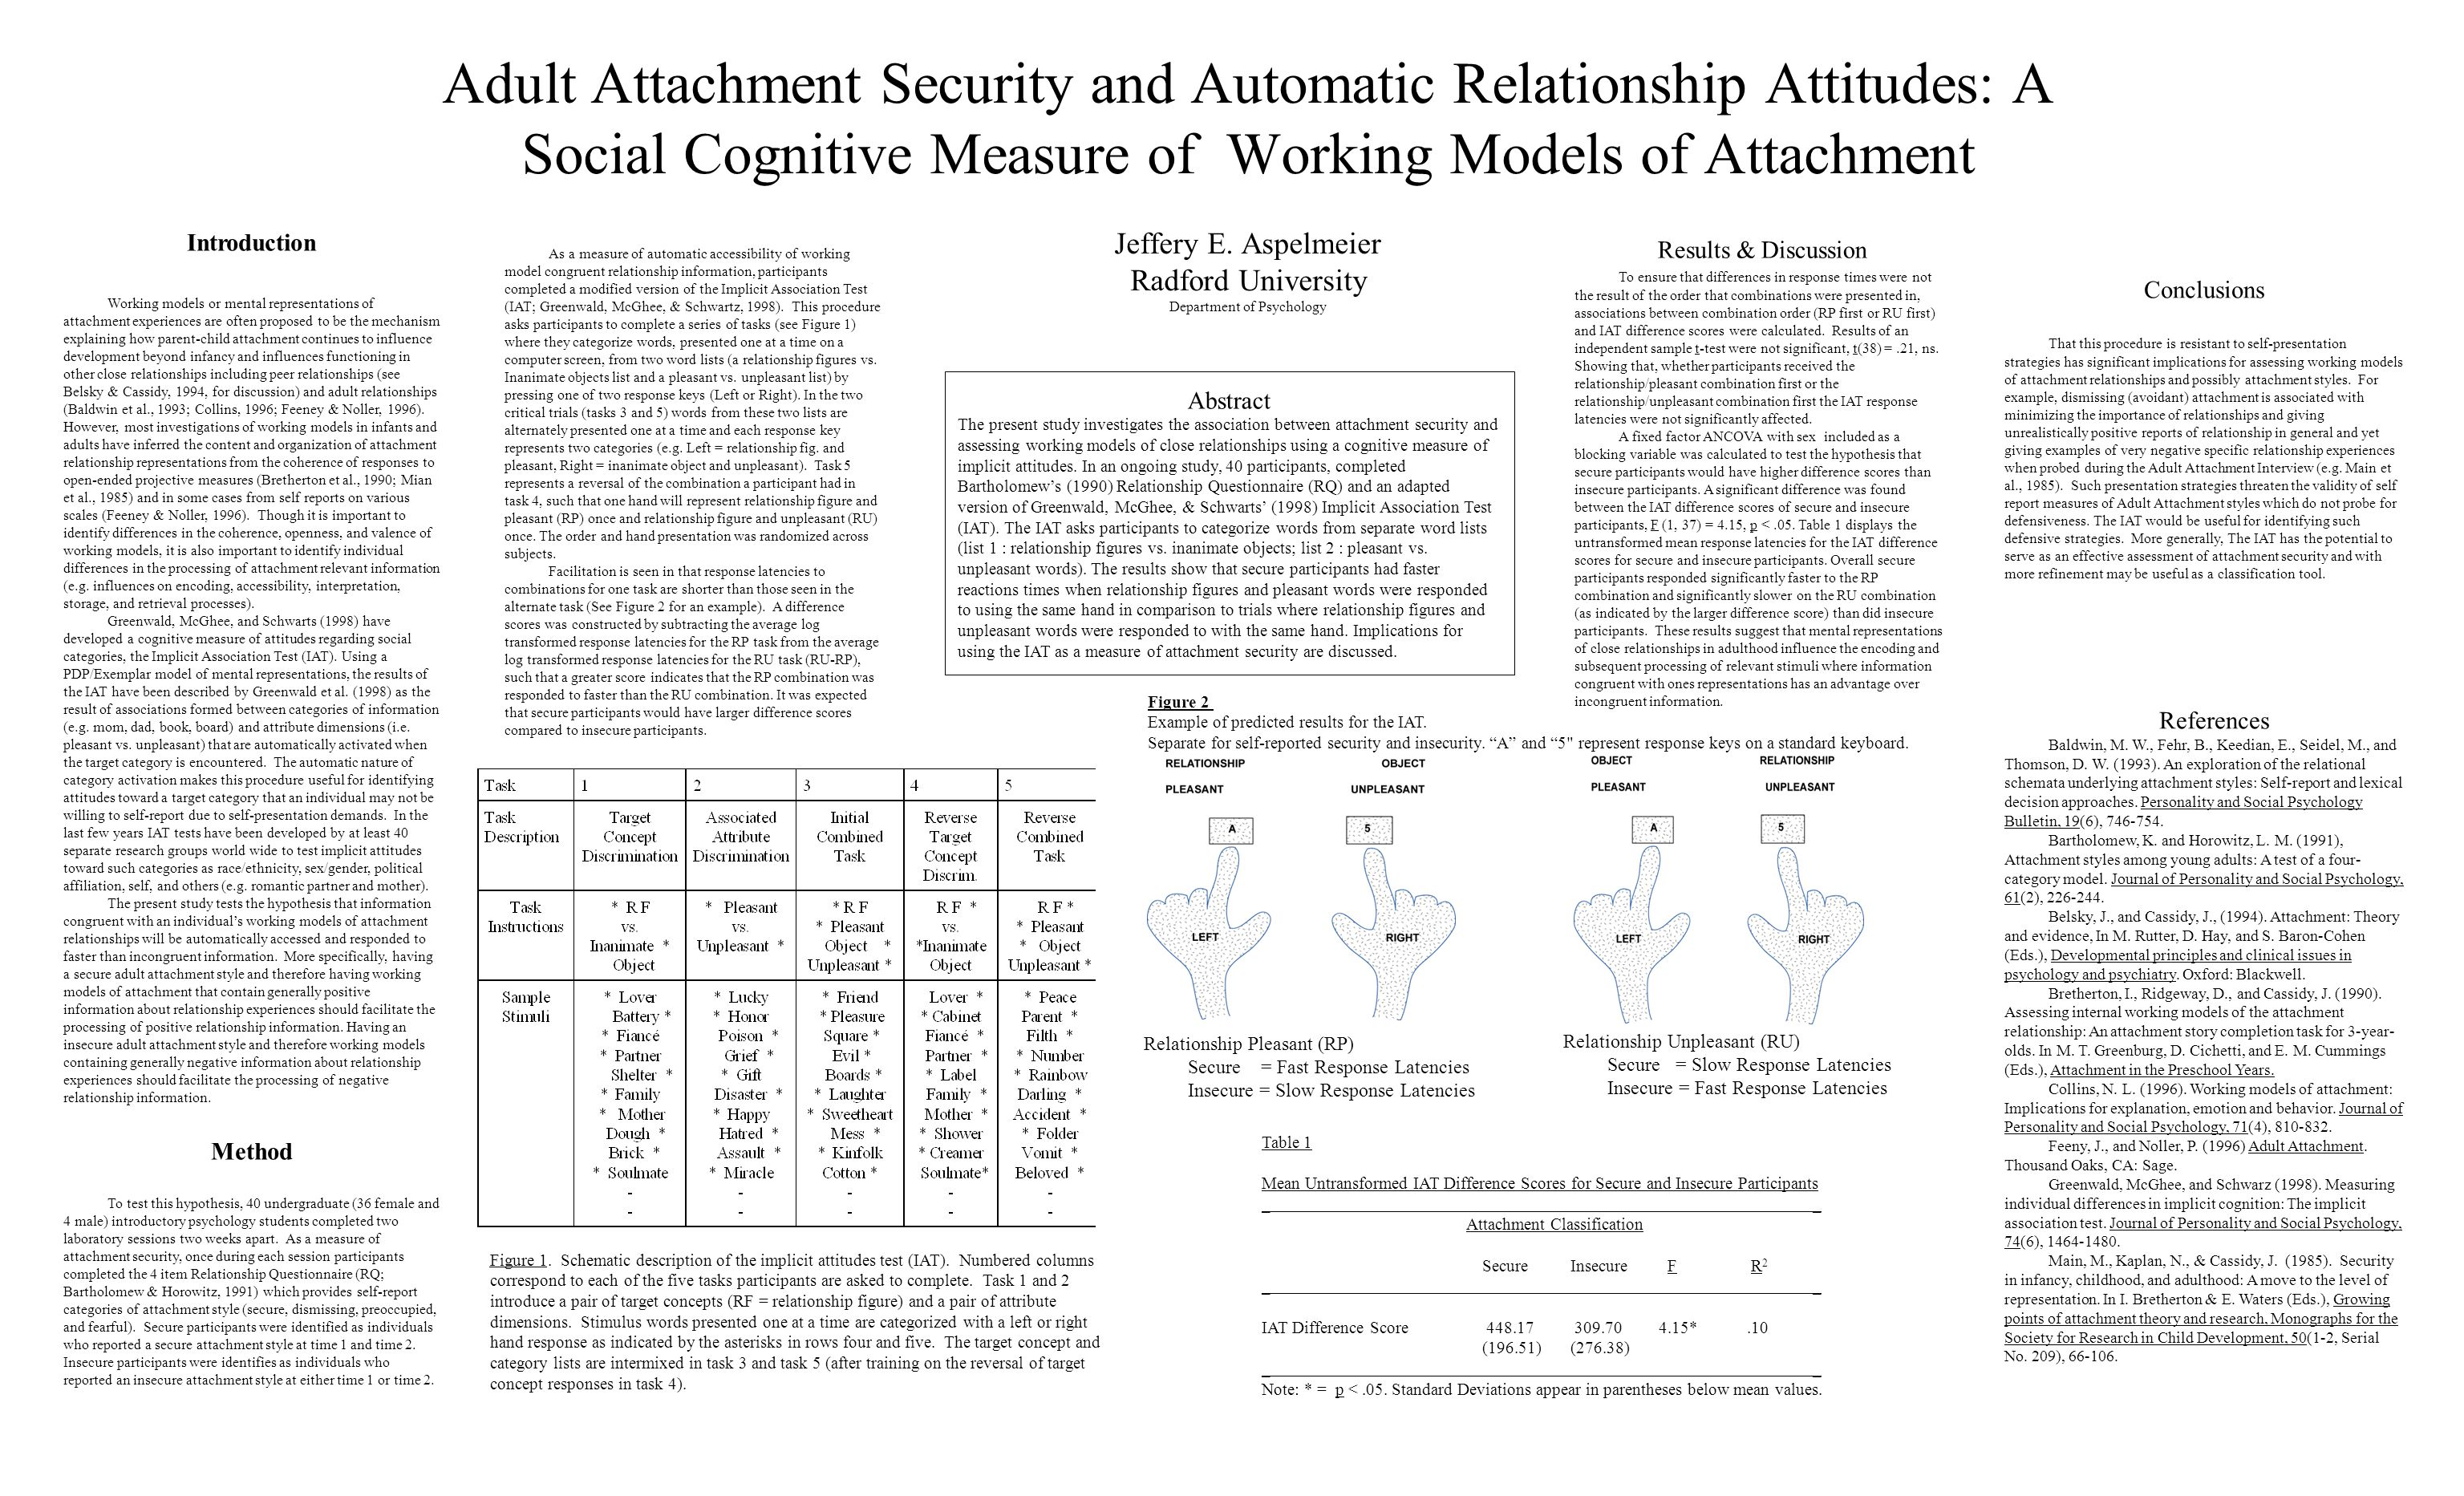 Adult Attachment Security and Automatic Relationship Attitudes: A Social Cognitive Measure of Working Models of Attachment Jeffery E.